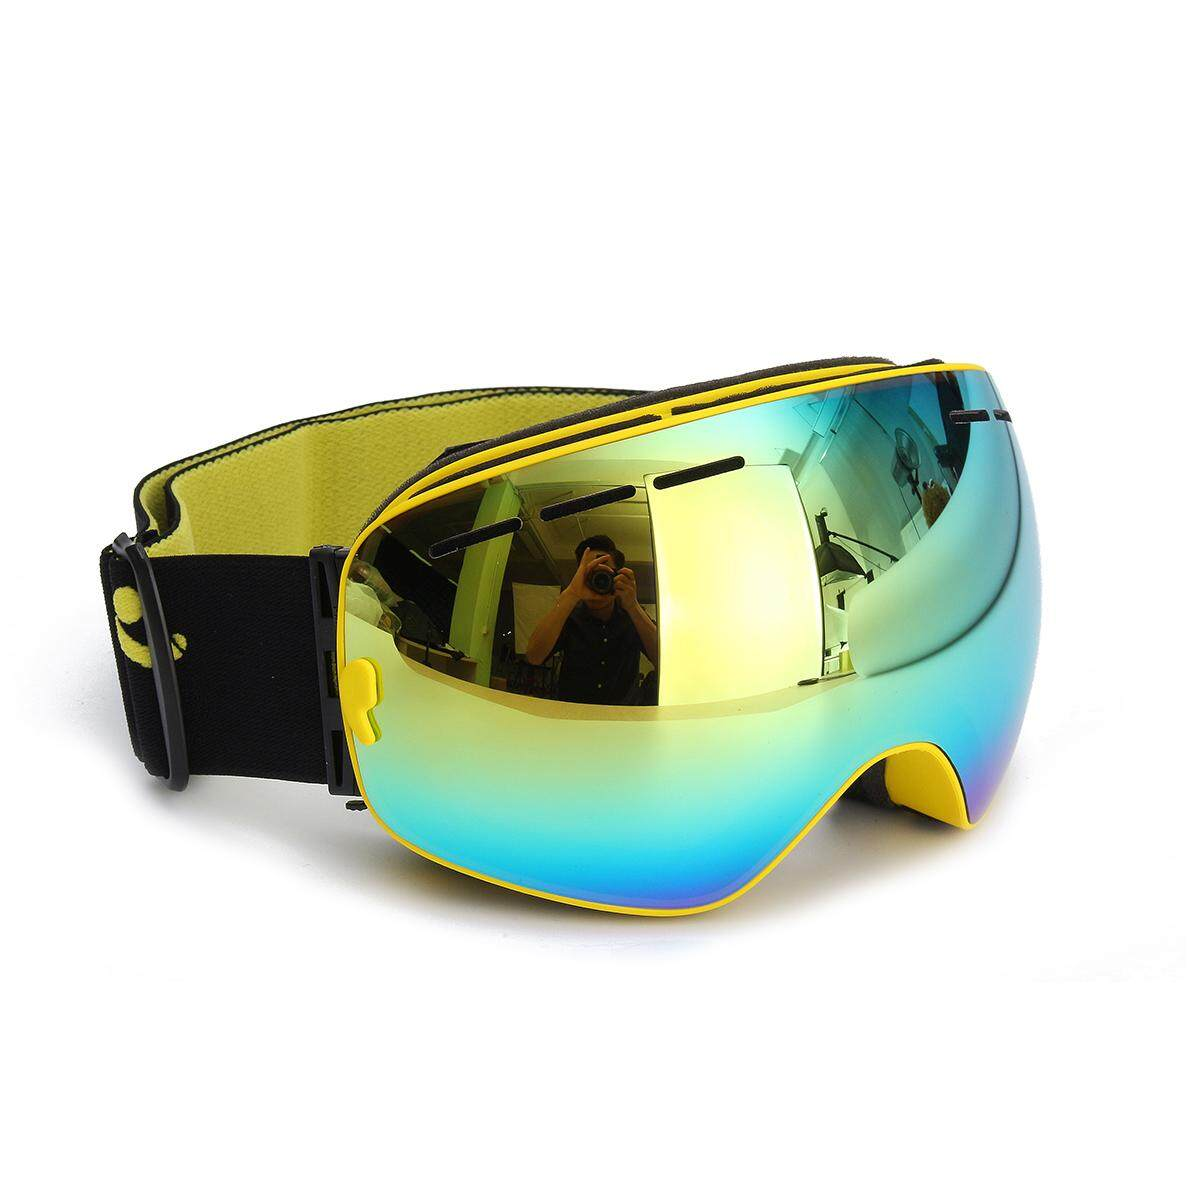 COPOZZ UV400 Spherical Dual-layer Lens Snowboard Glasses Anti-fog Skiing Goggles #Yellow - intl